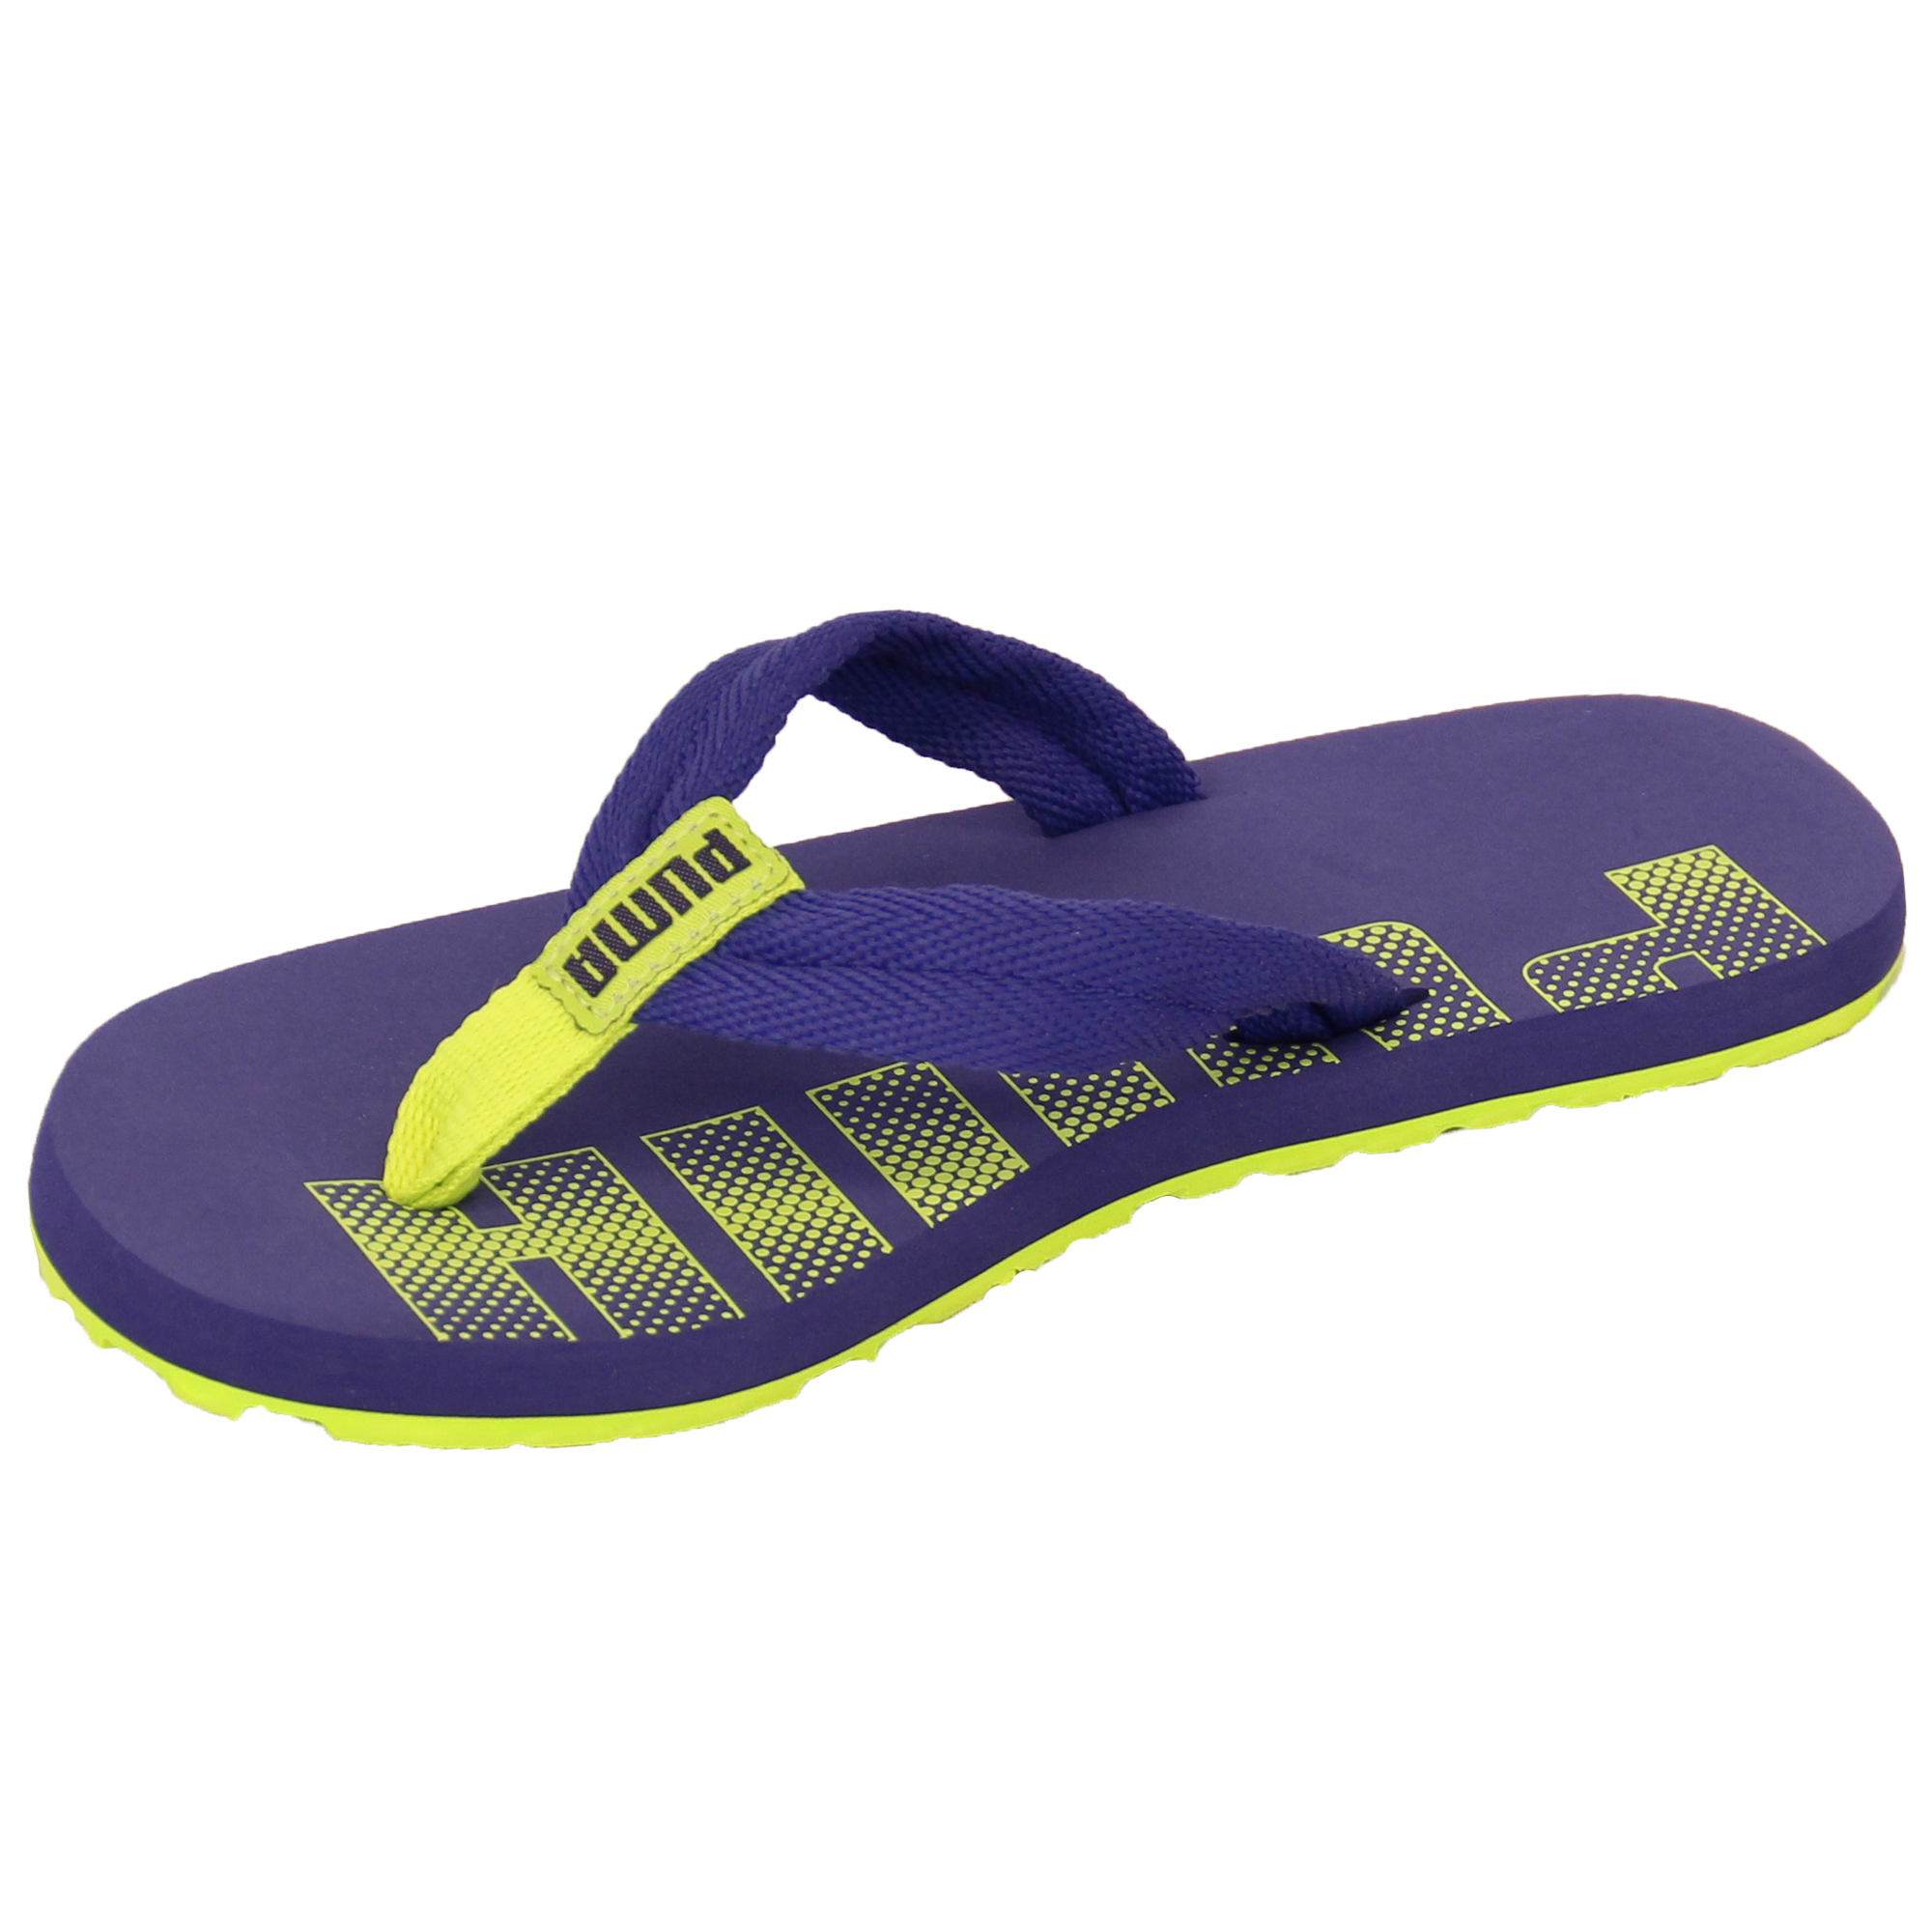 boys puma epic flip flops kids toe post girls sandals